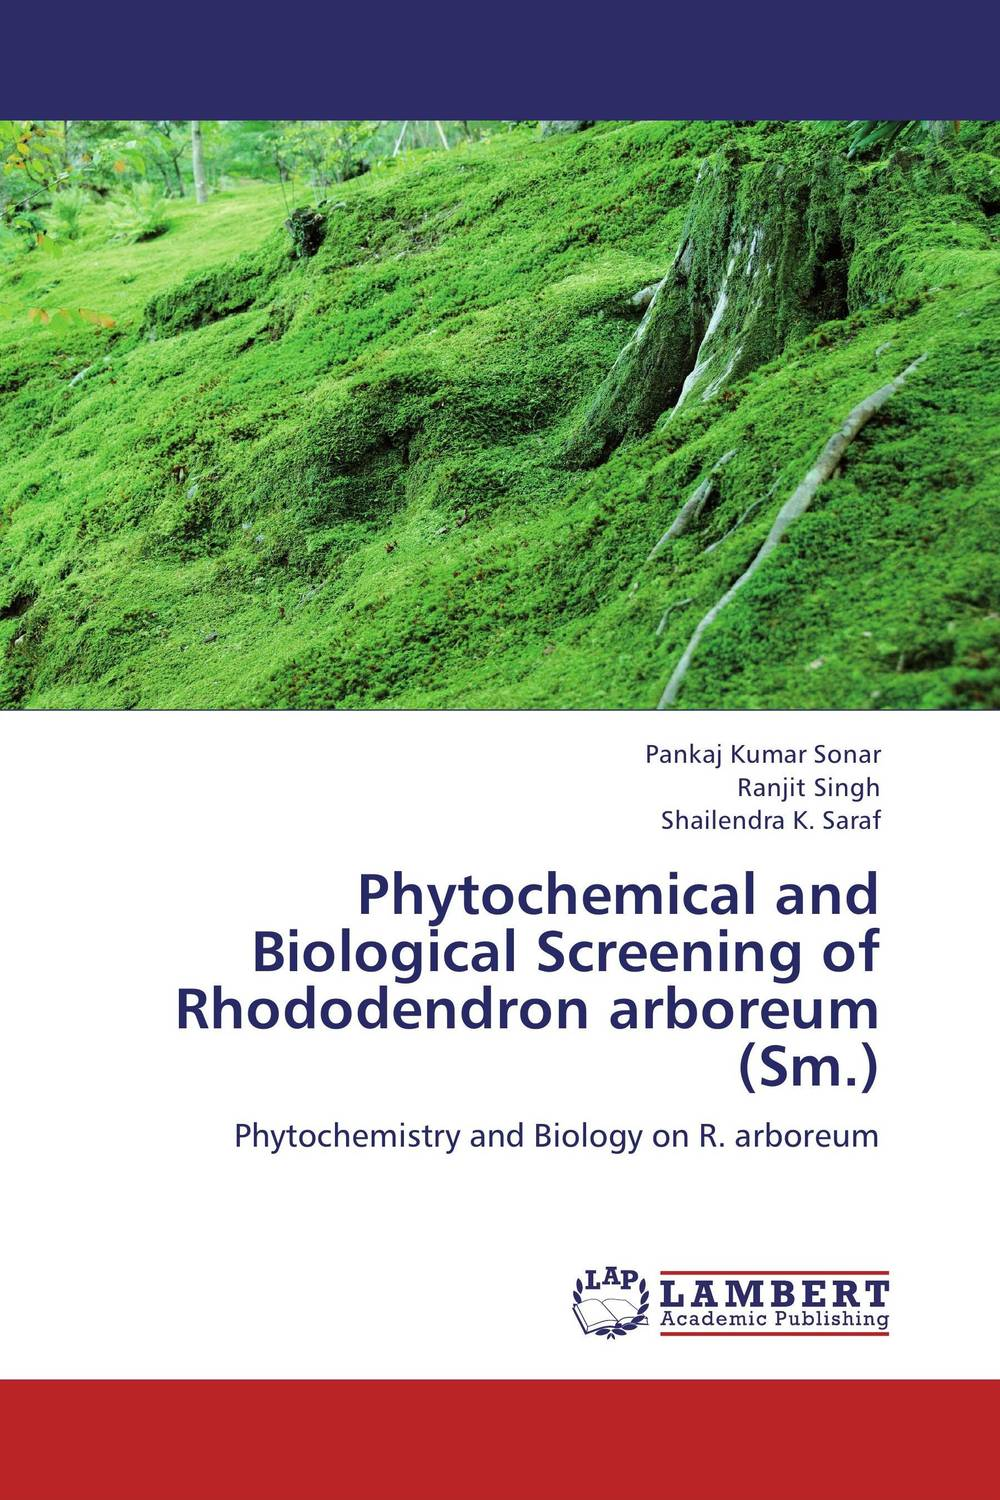 Phytochemical and Biological Screening of Rhododendron arboreum (Sm.) md rabiul islam s m ibrahim sumon and farhana lipi phytochemical evaluation of leaves of cymbopogan citratus